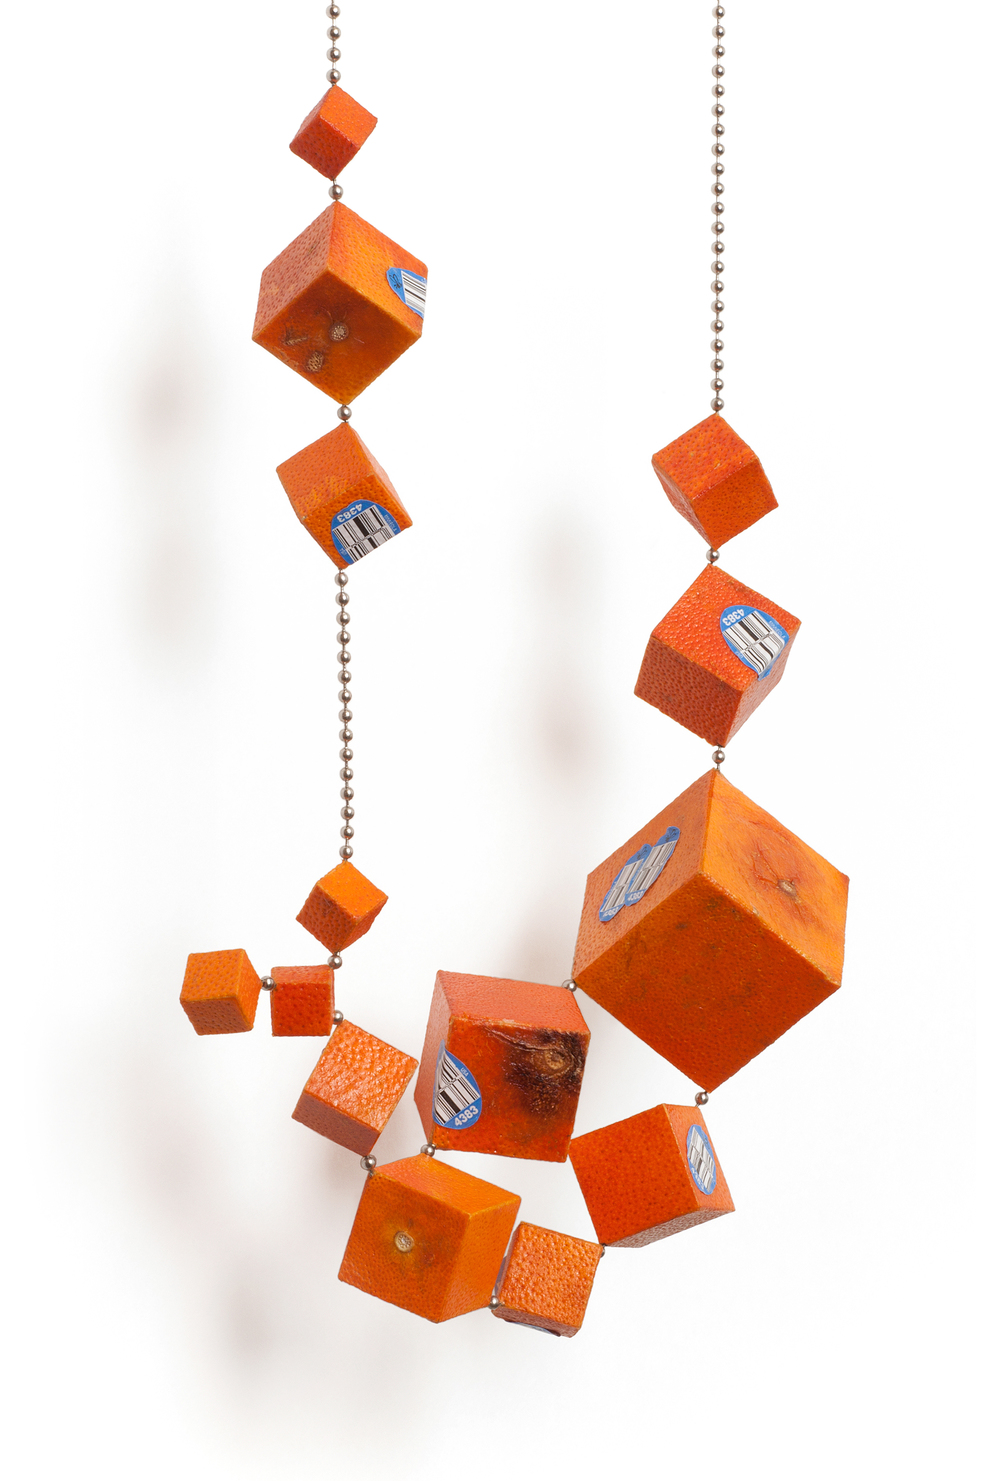 Cubic Tangelo Necklace I by Joshua Kosker